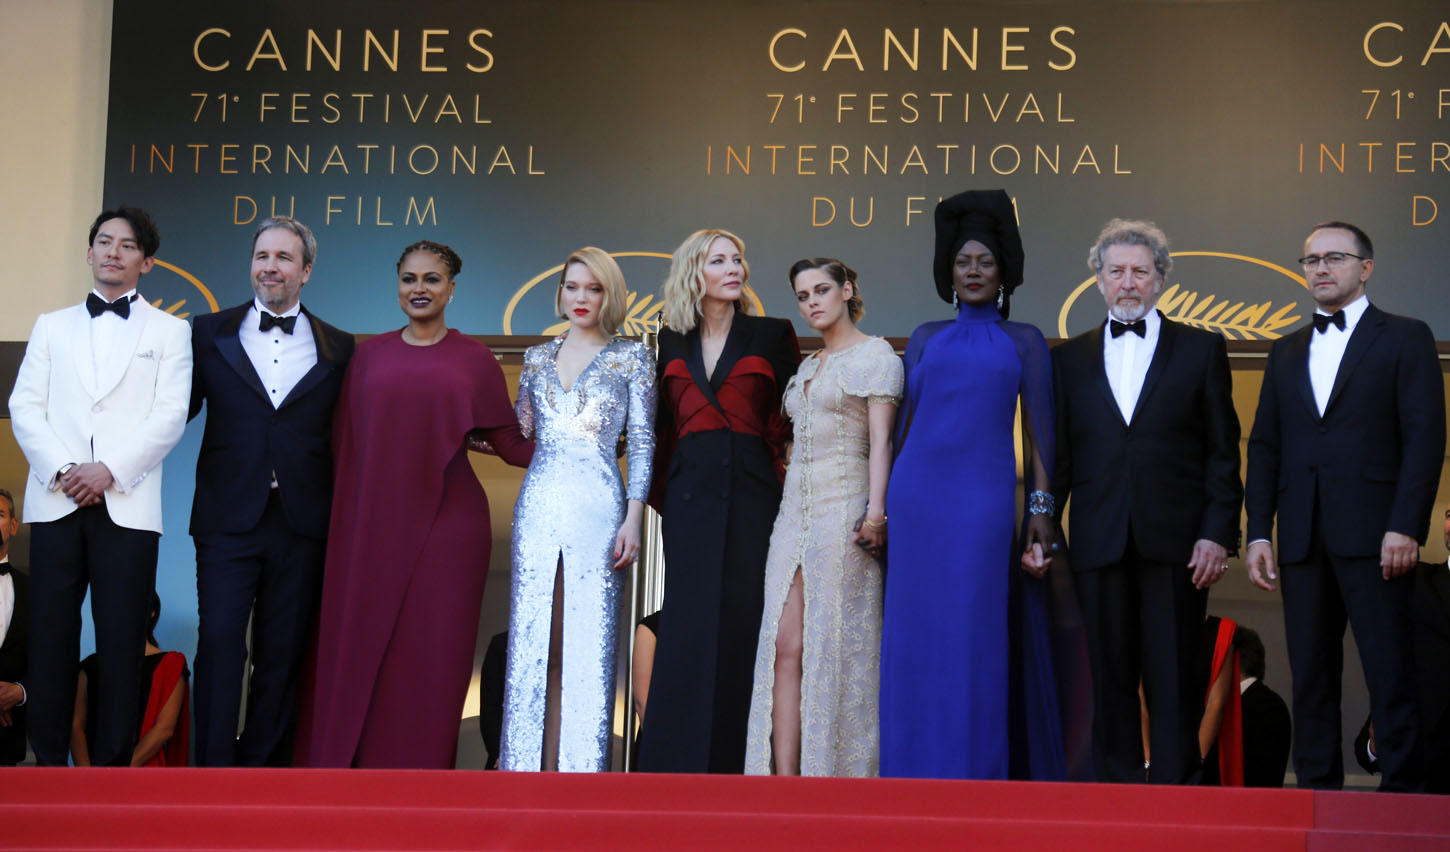 71st Cannes Film Festival - Closing ceremony and screening of the film